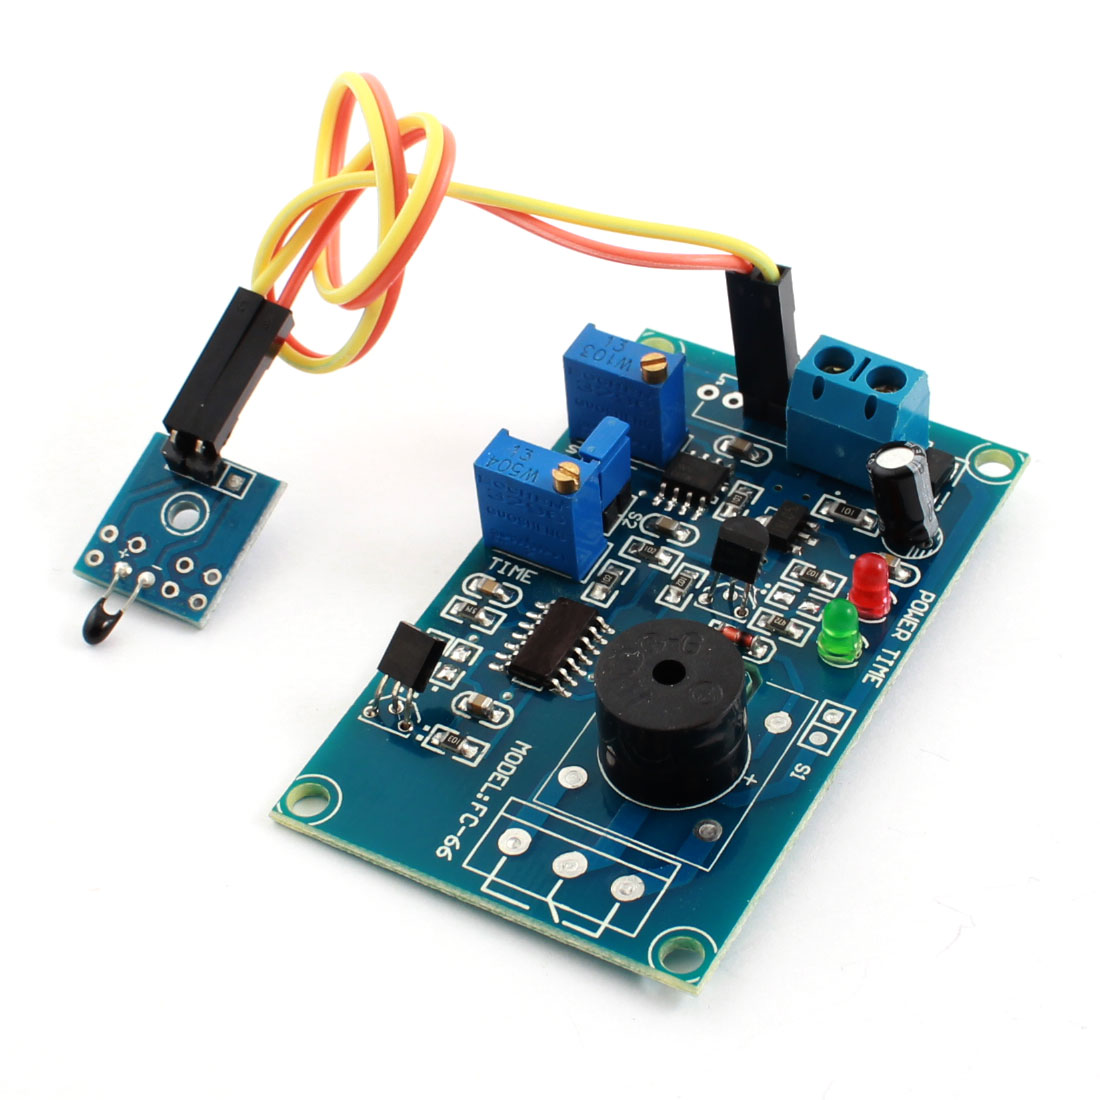 DC12V 0-20S Pyroelectricity Alarm Buzzer Time Delay PCB Circuit Module